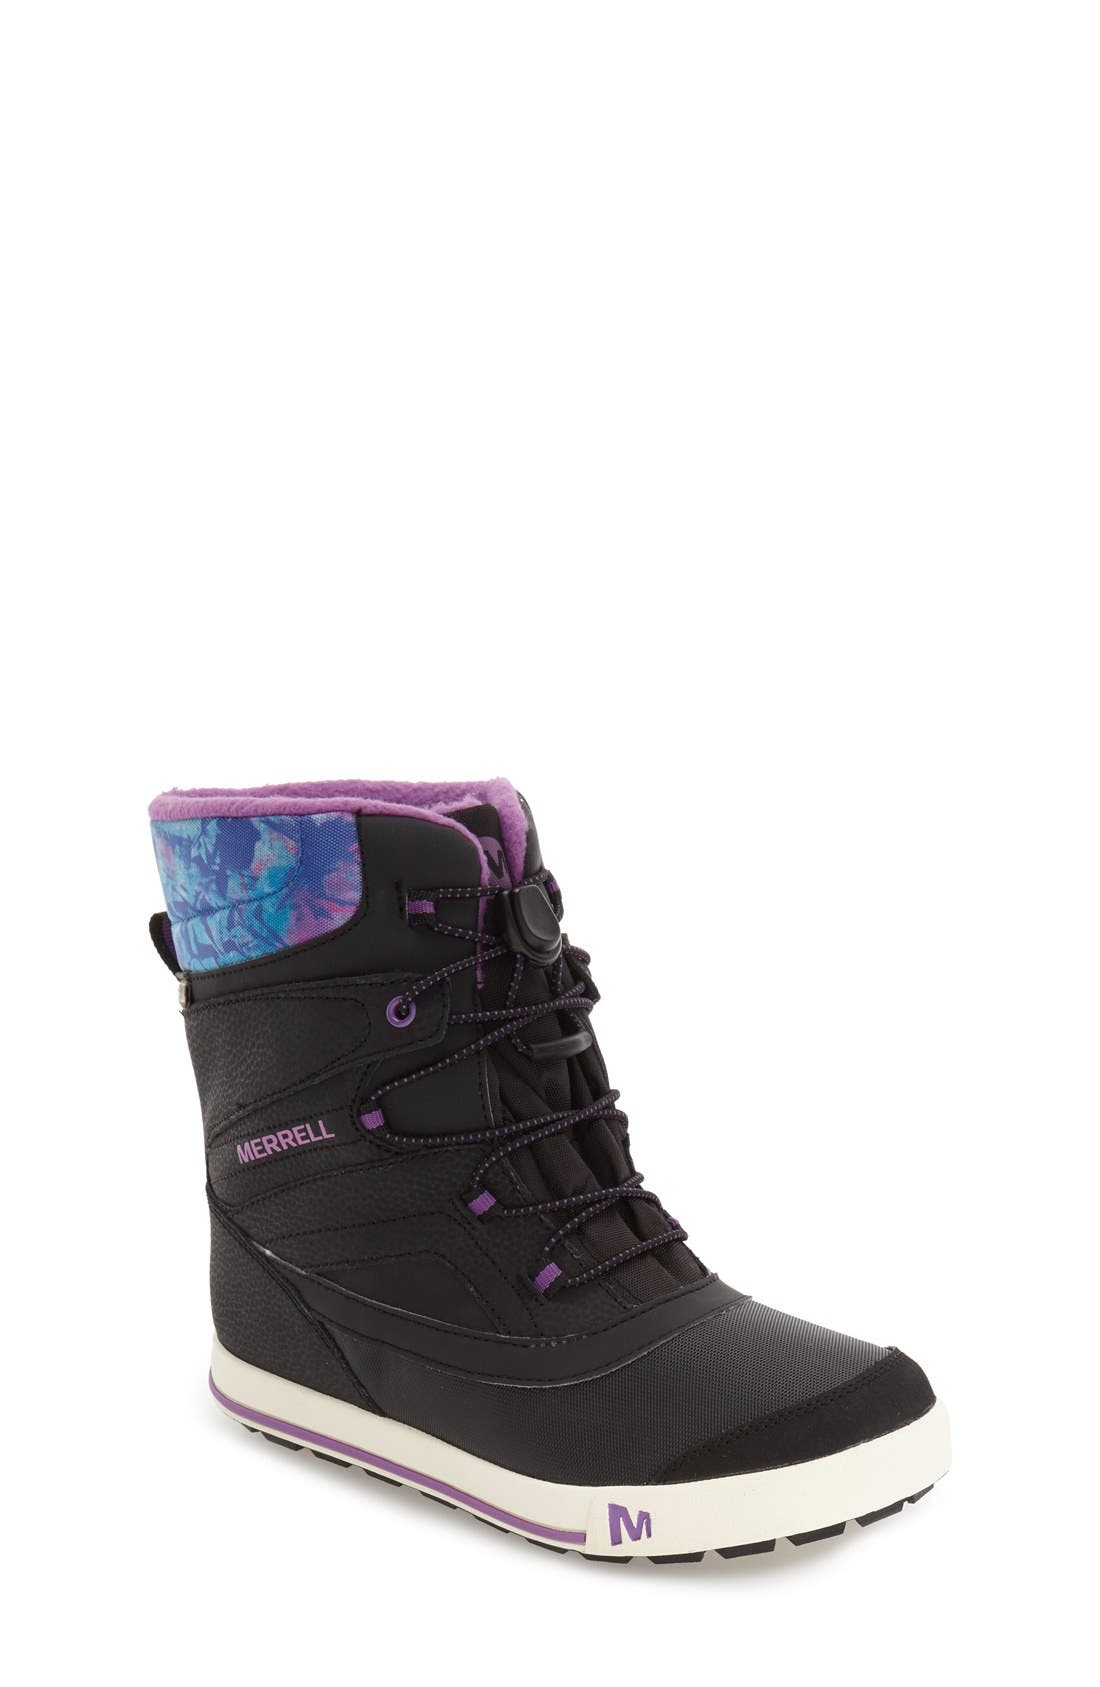 MERRELL 'Snow Bank 2' Waterproof Boot, Main, color, BLACK/ PRINT/ BERRY LEATHER